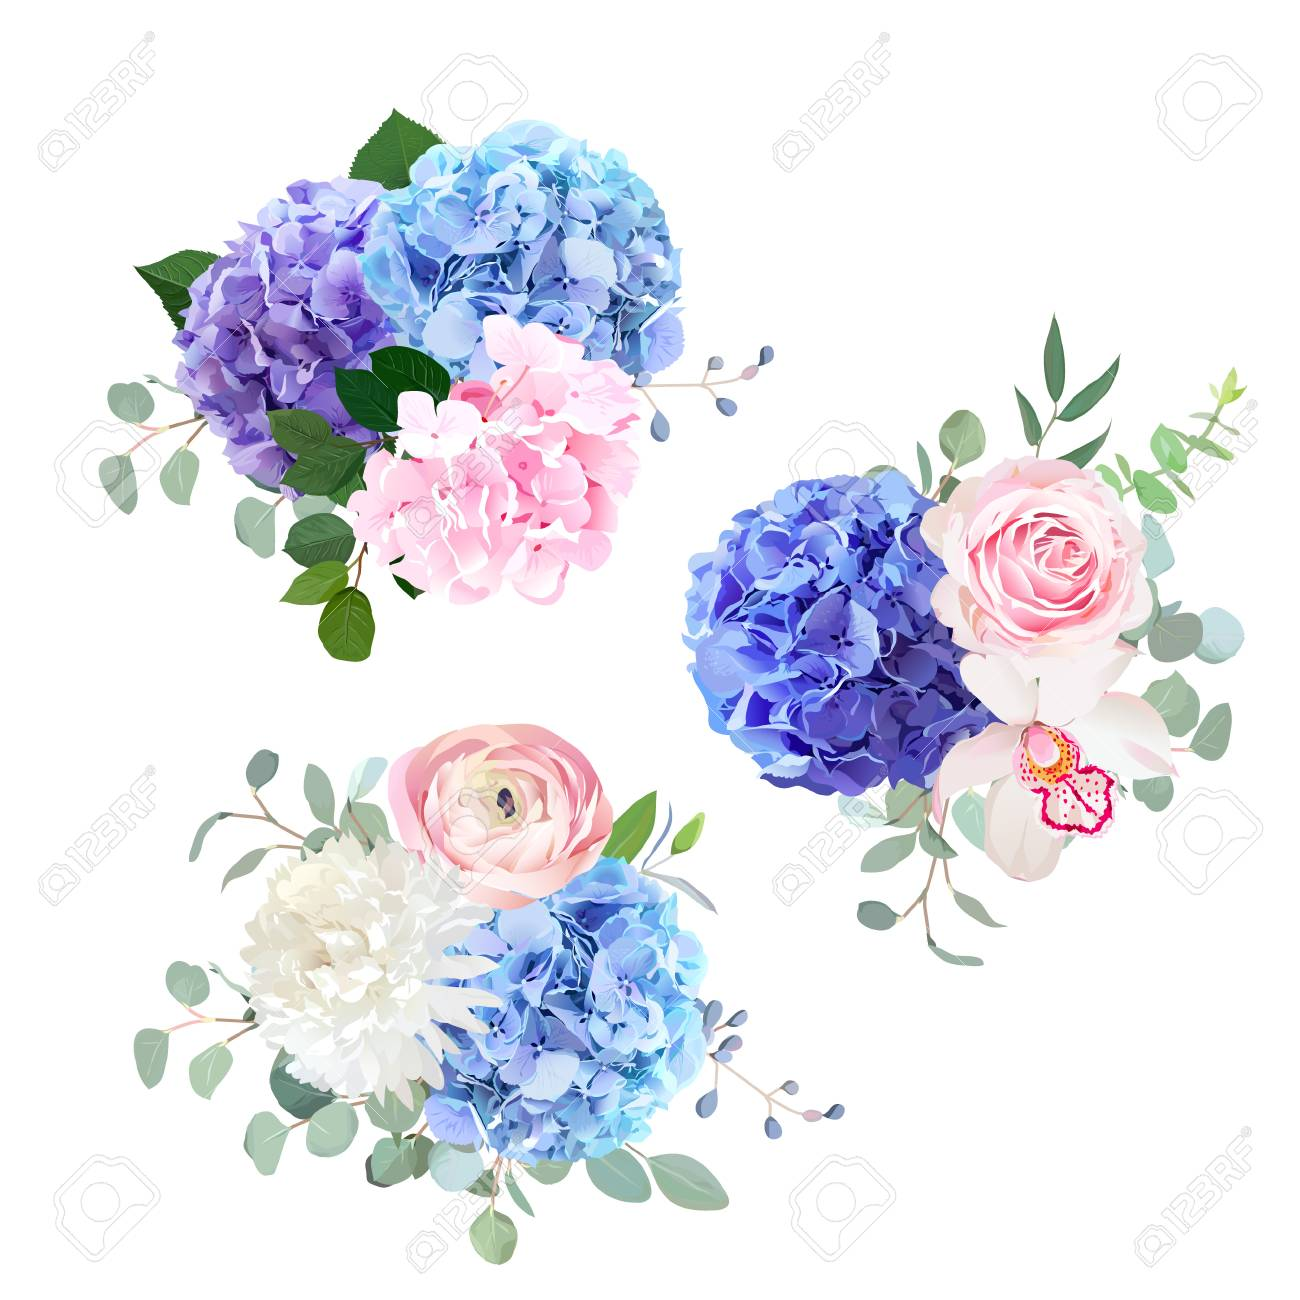 Blue, pink and purple hydrangea, orchid, rose, white chrysanthem - 92872211